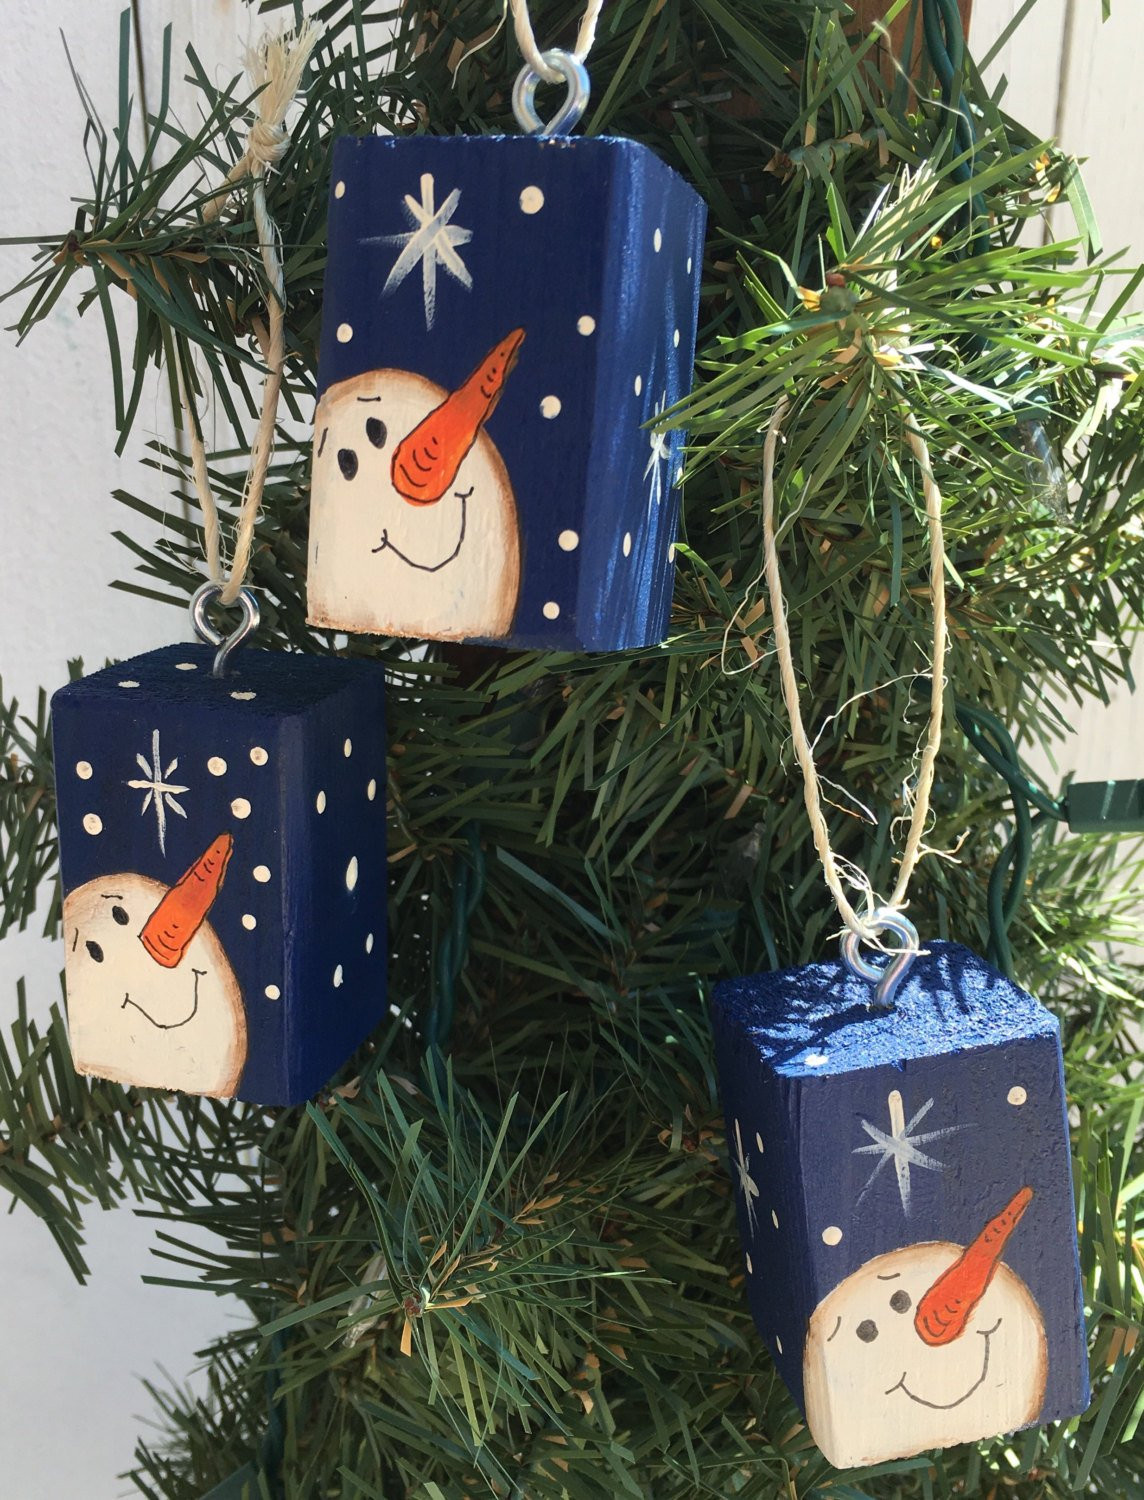 Best Of Snowman Christmas Tree ornaments Set Of 3 Snowman Christmas ornaments Of Adorable 45 Models Snowman Christmas ornaments